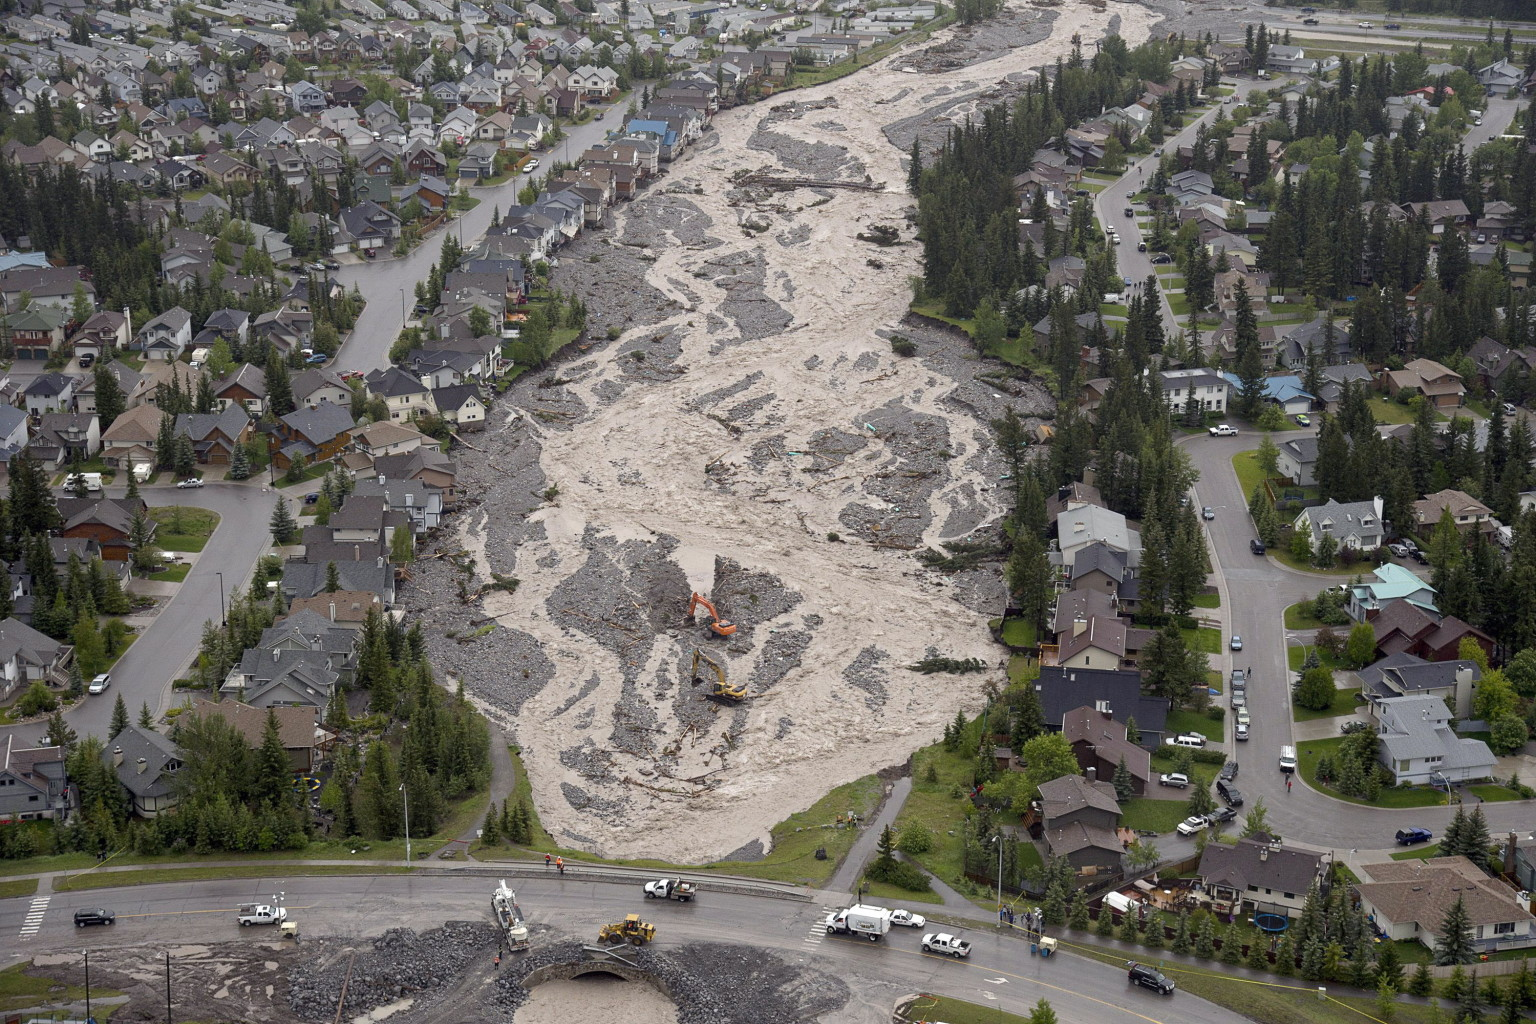 Alberta Flooding Aerial Pictures Show Widespread Damage